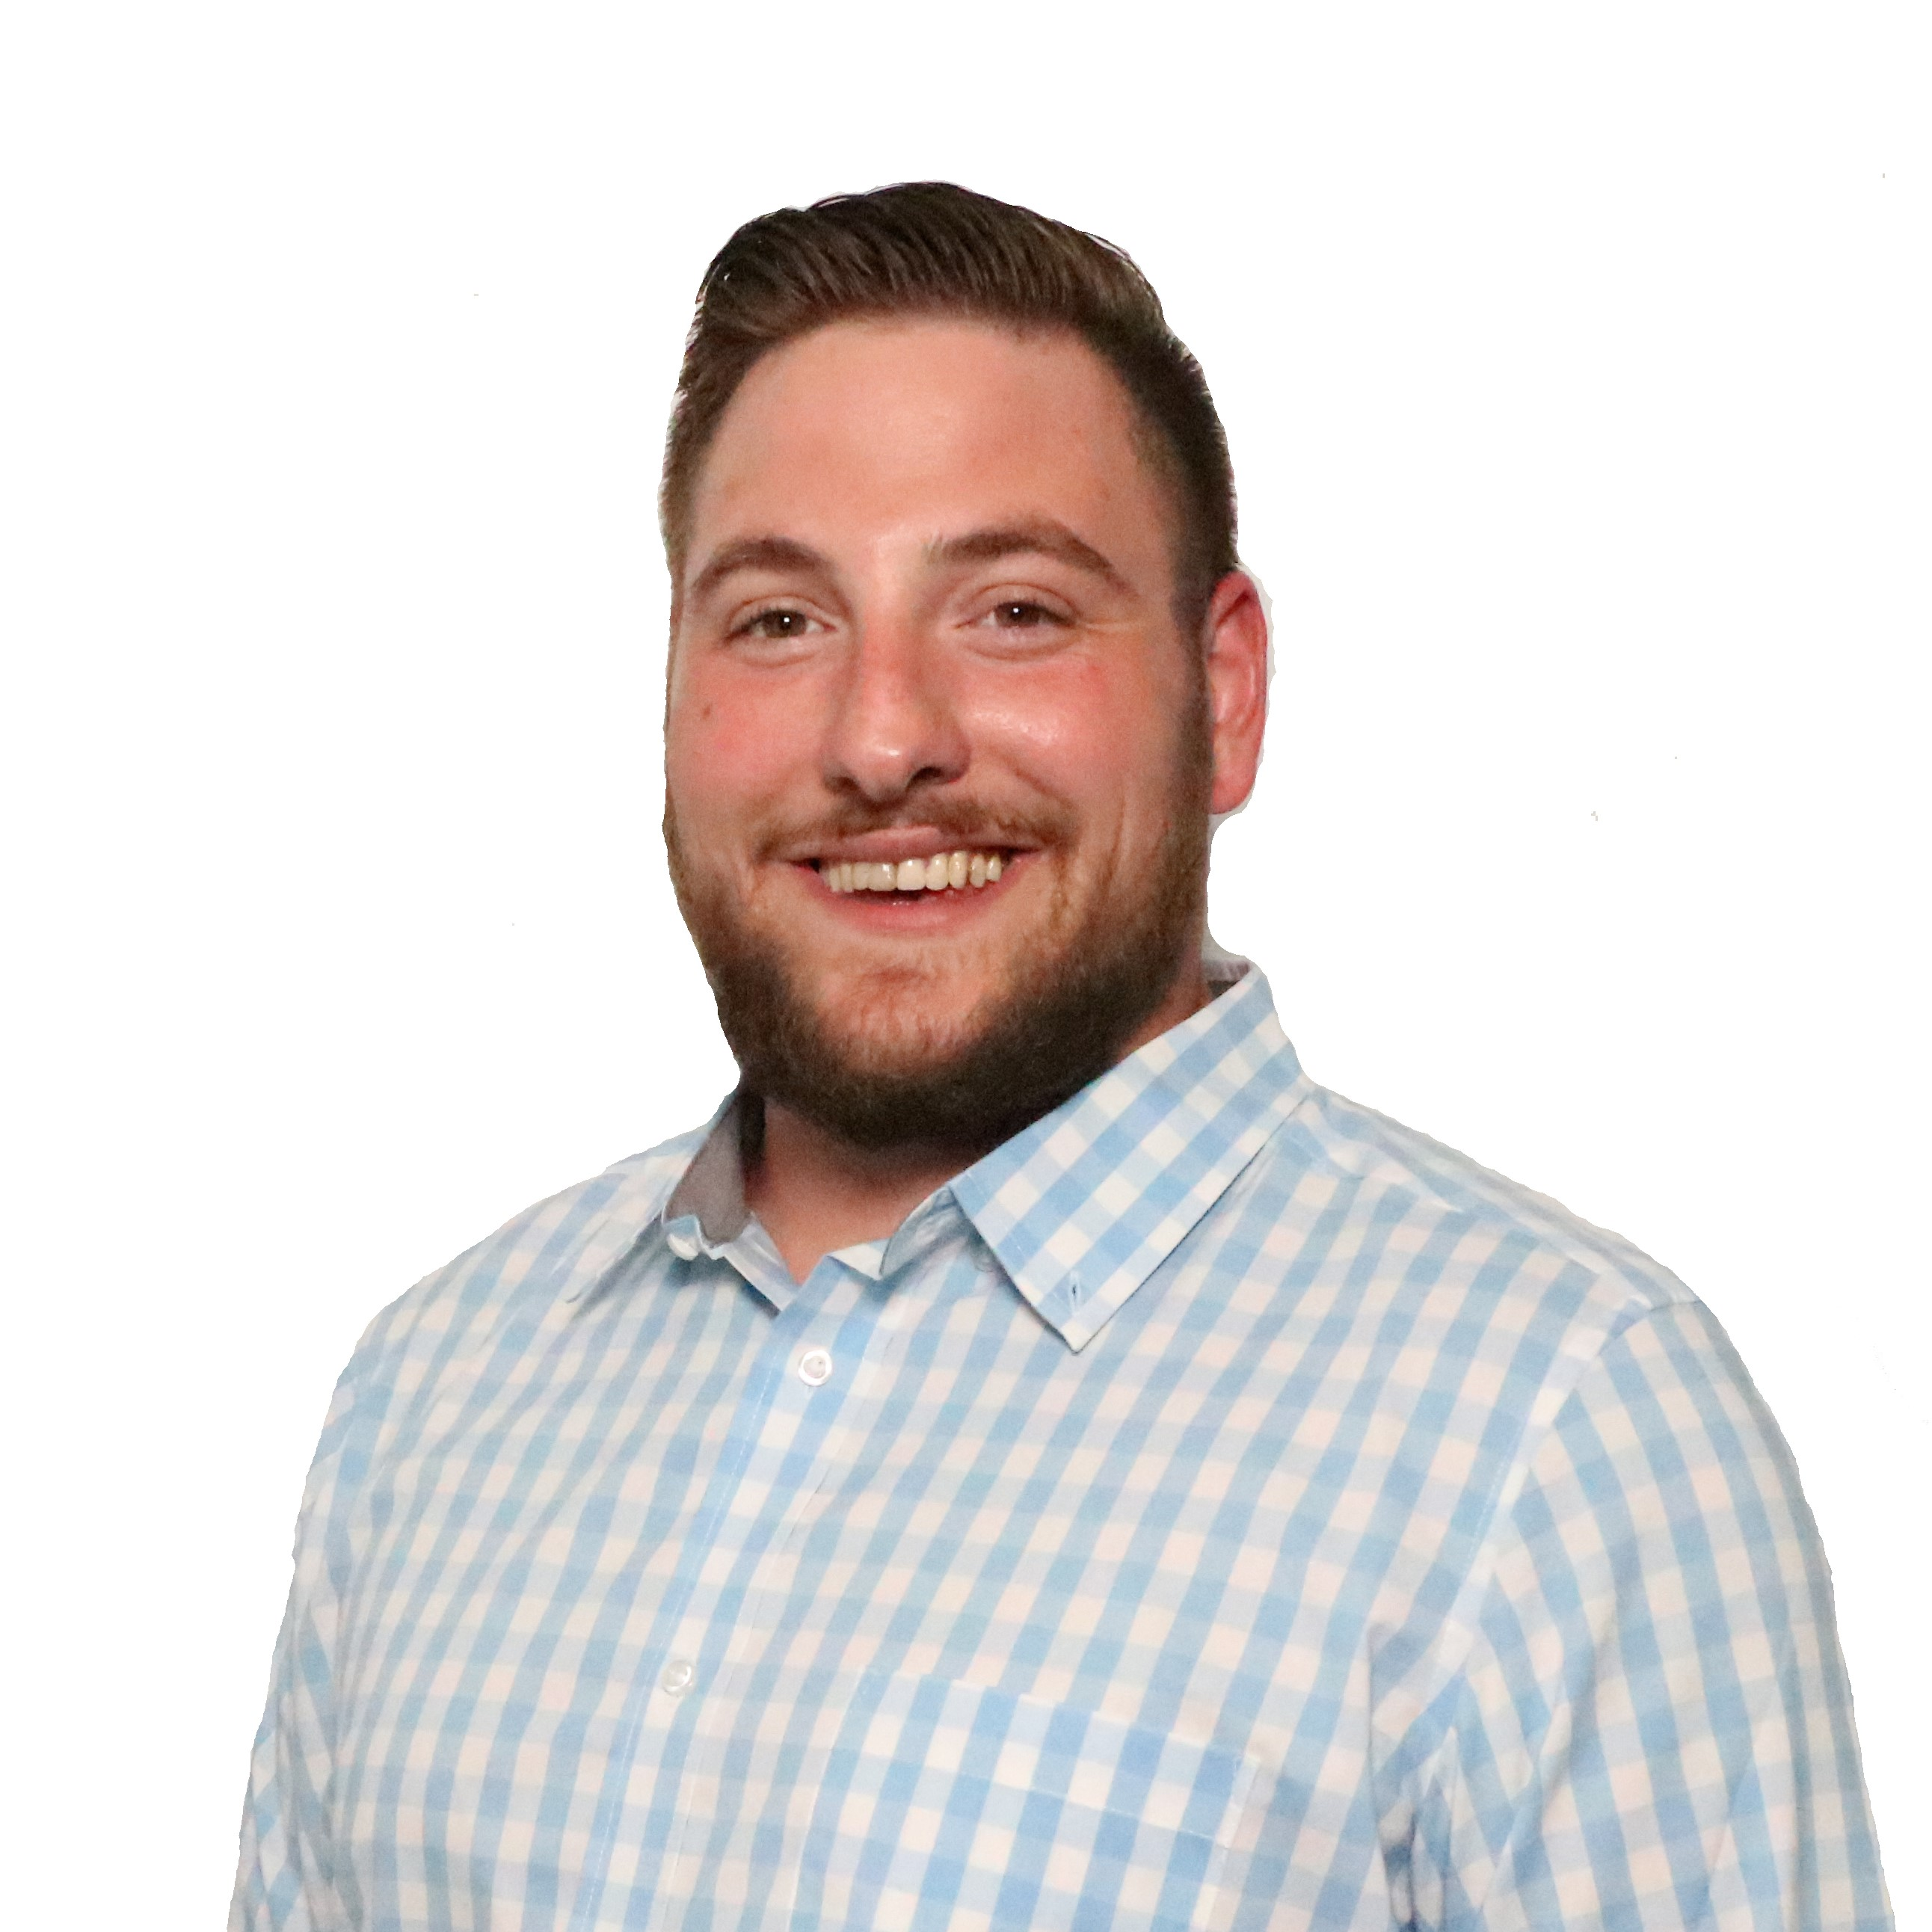 Justin Orick - Senior Manager of Events